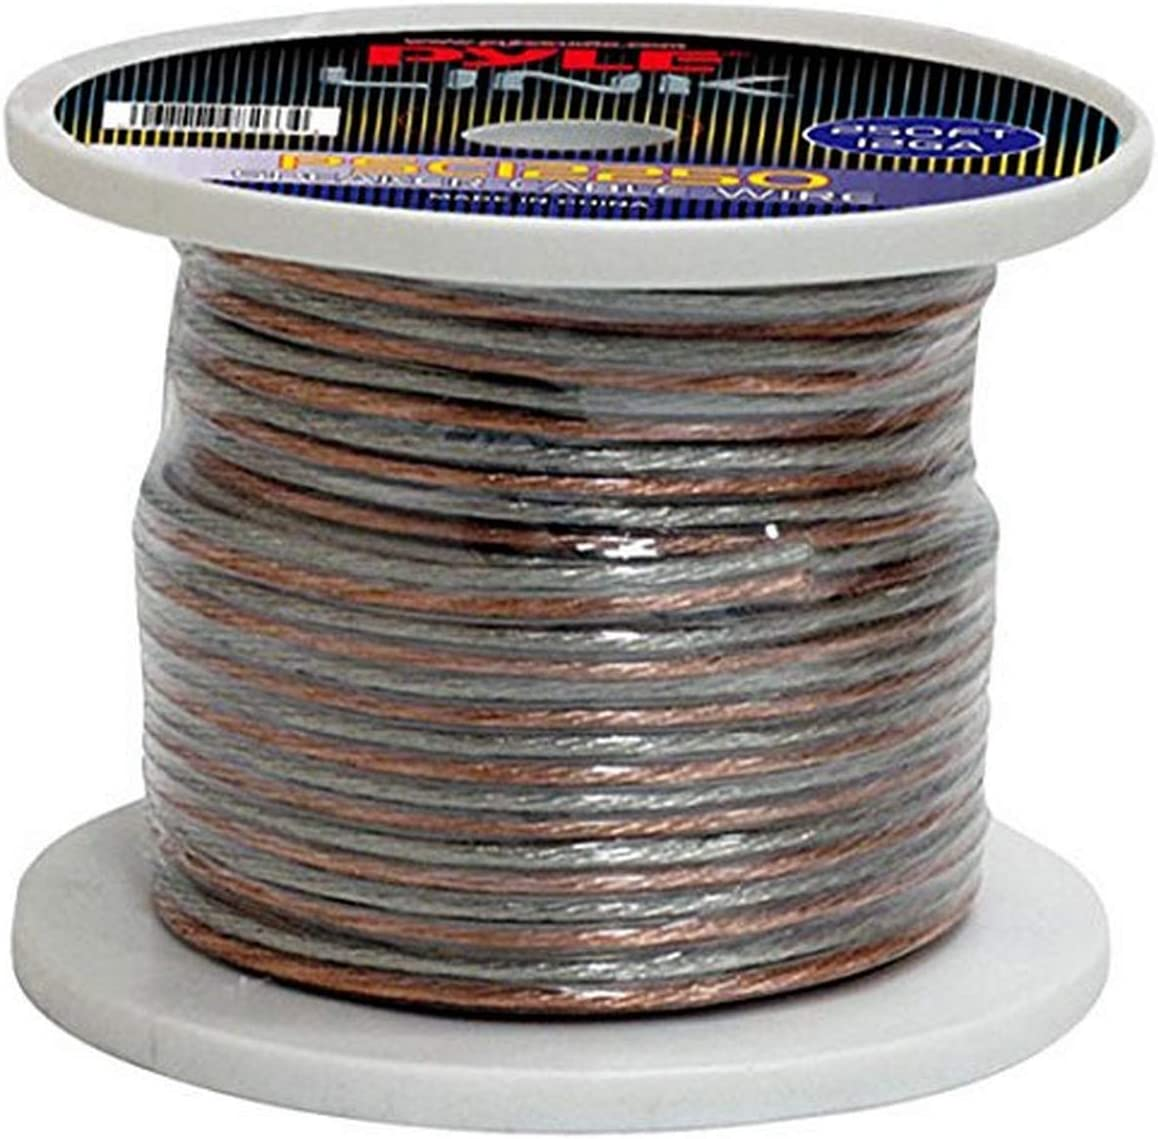 250ft 12 Gauge Speaker Wire - 1 Piece Copper Cable in Spool for Connecting Audio Stereo to Amplifier, Surround Sound System, TV Home Theater and Car Stereo - Pyle PSC12250: Home Audio & Theater